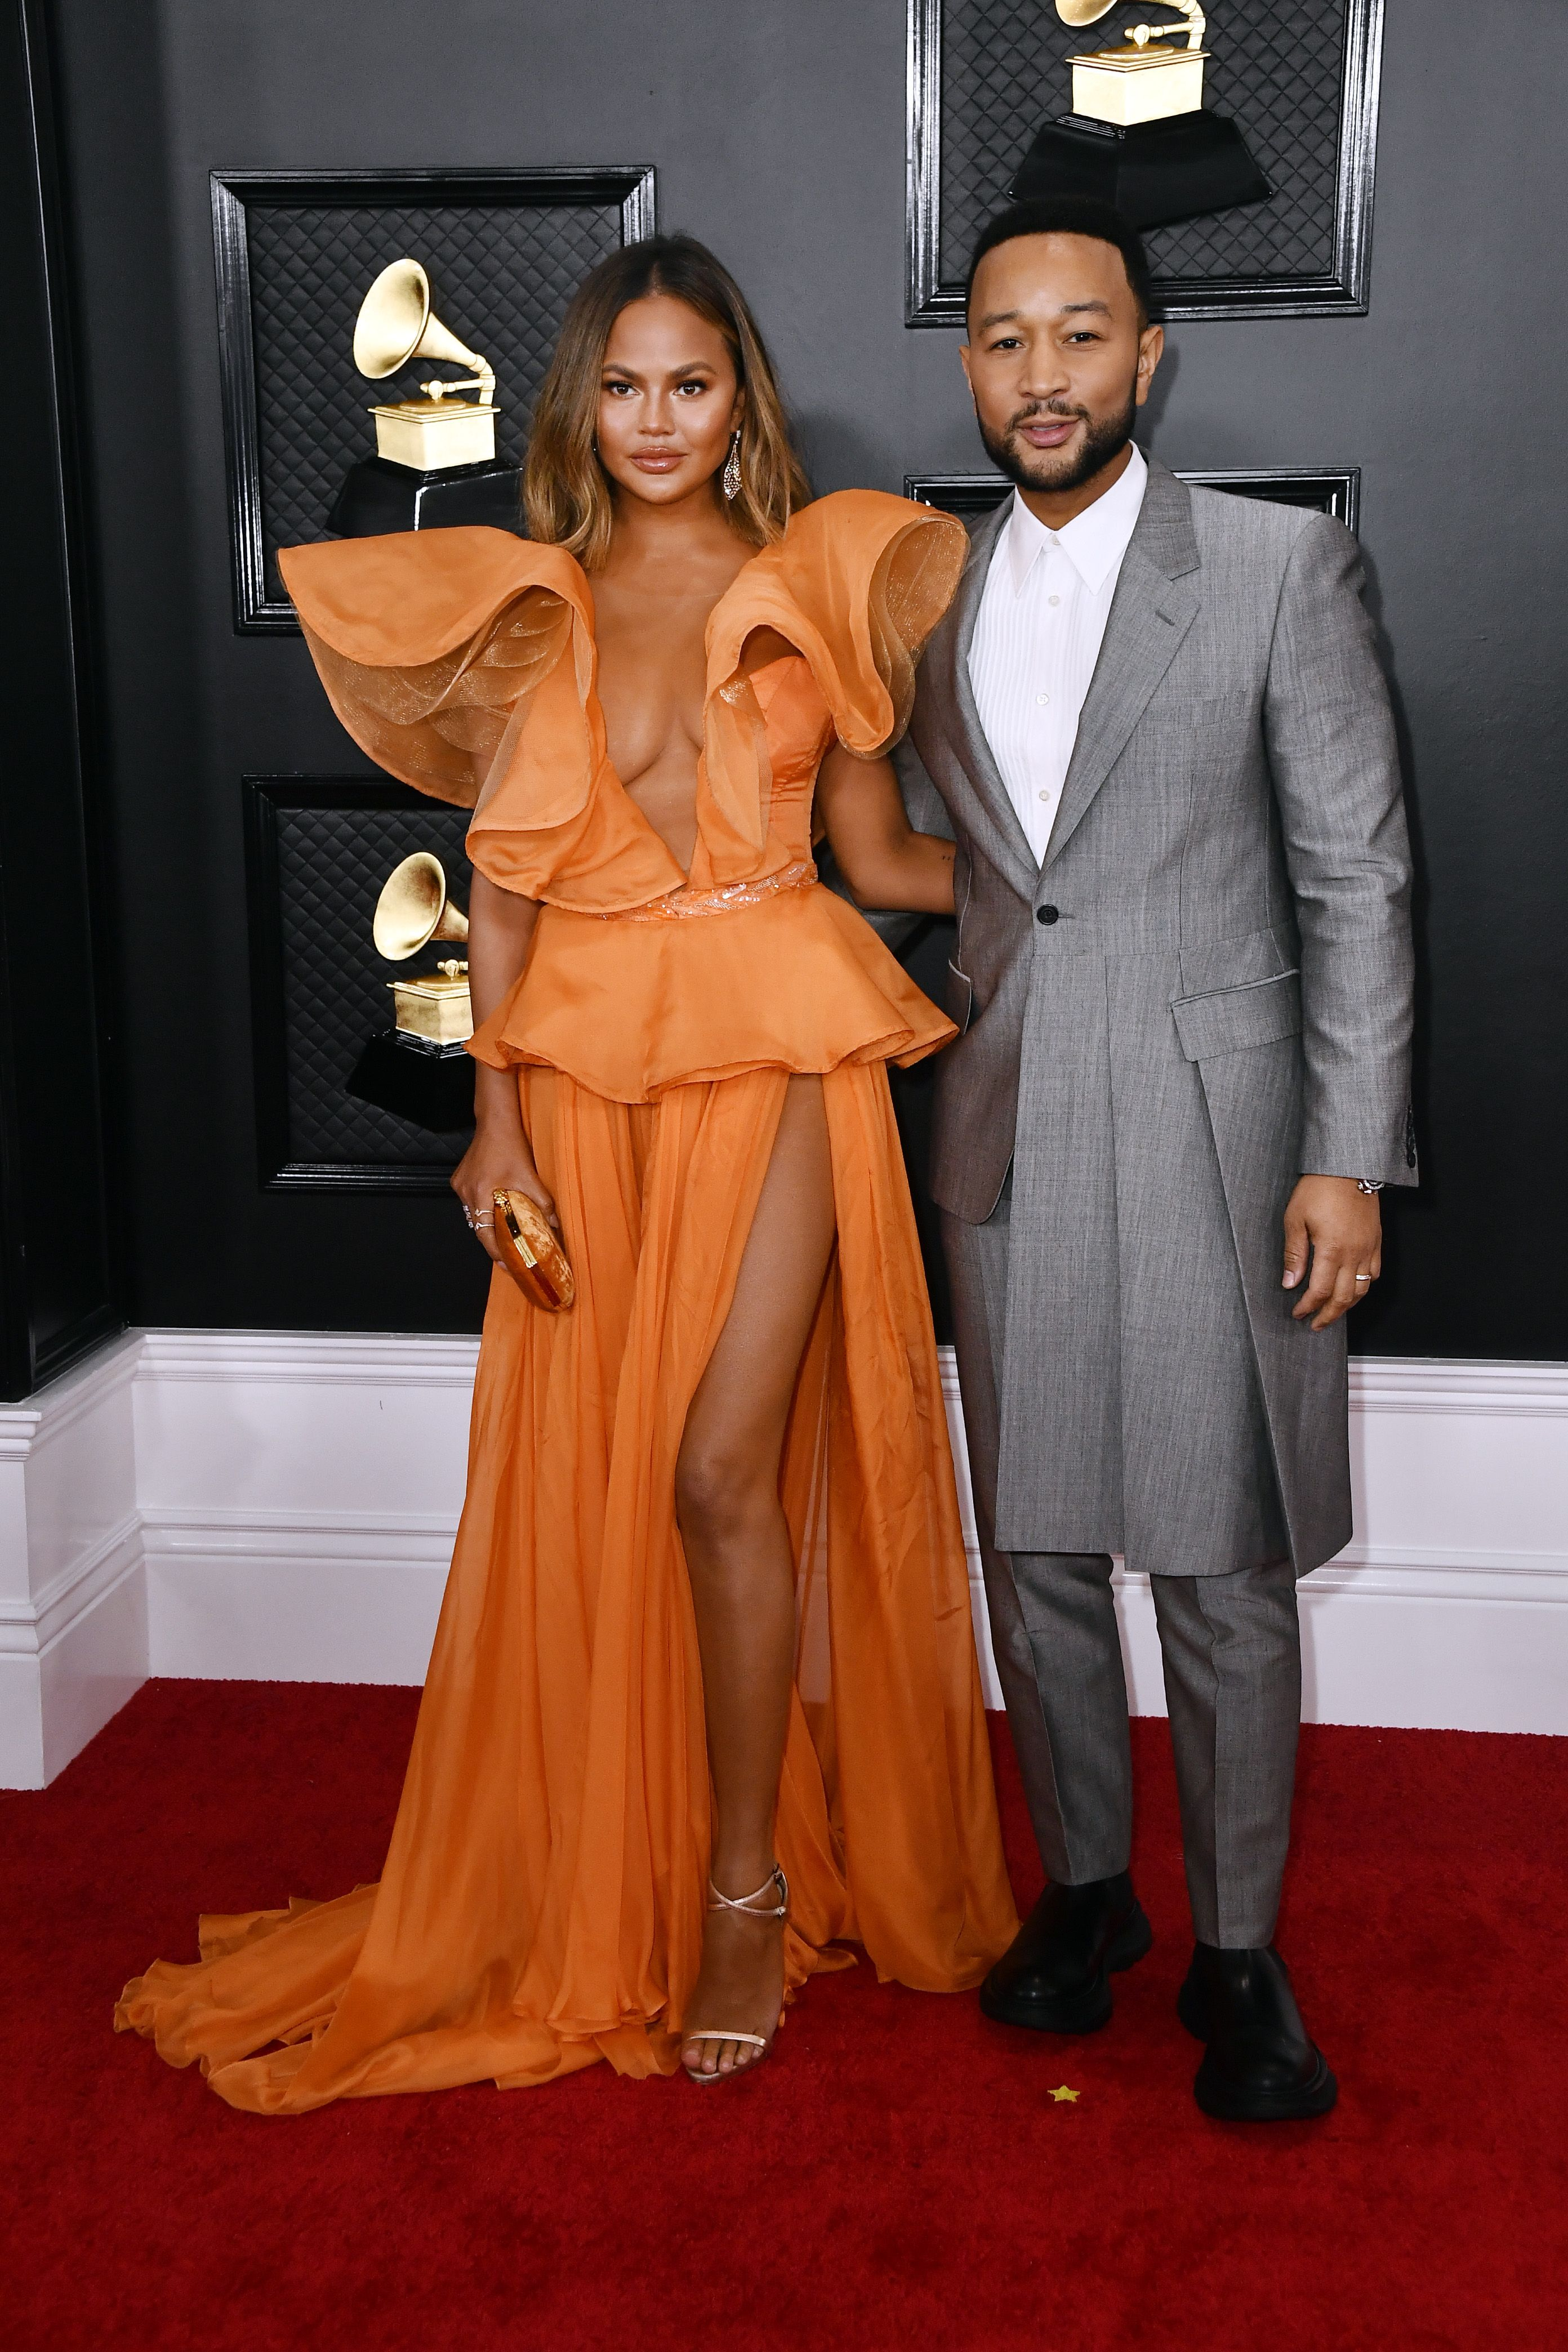 Chrissy Teigen And John Legend Win Best Dressed At The Grammys